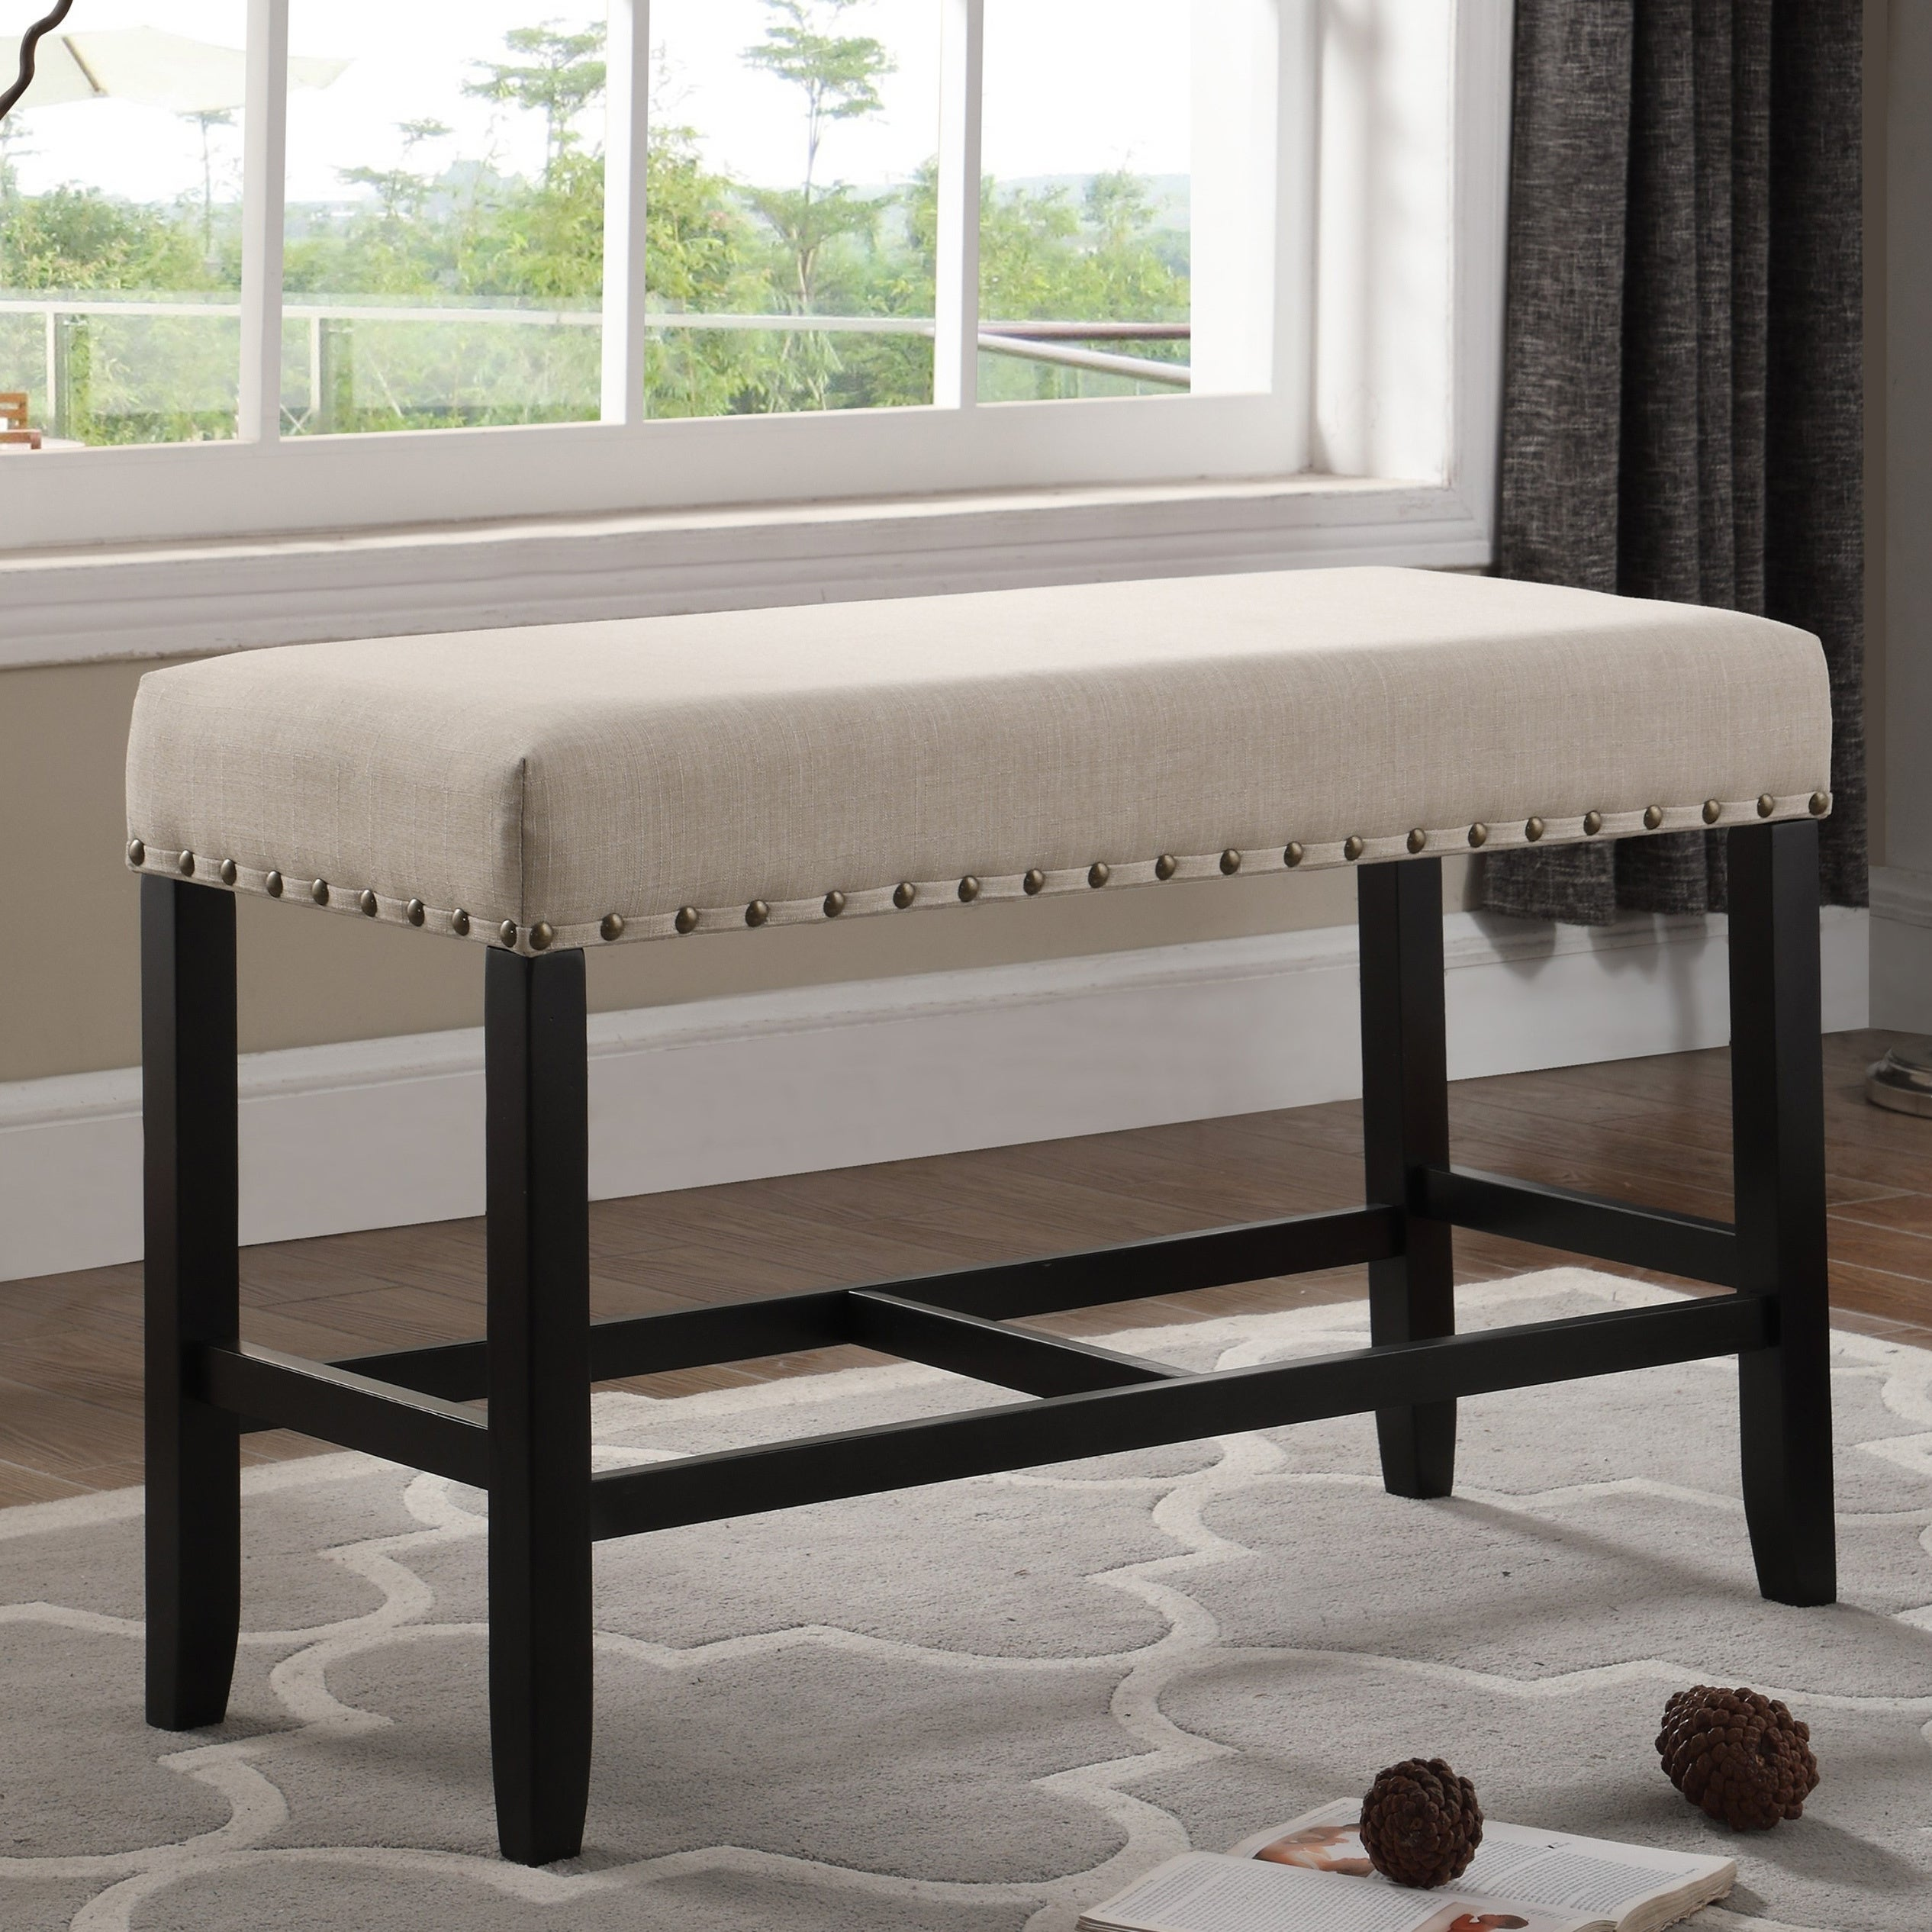 Brilliant Biony Blue Fabric Counter Height Dining Bench With Nailhead Trim Cjindustries Chair Design For Home Cjindustriesco